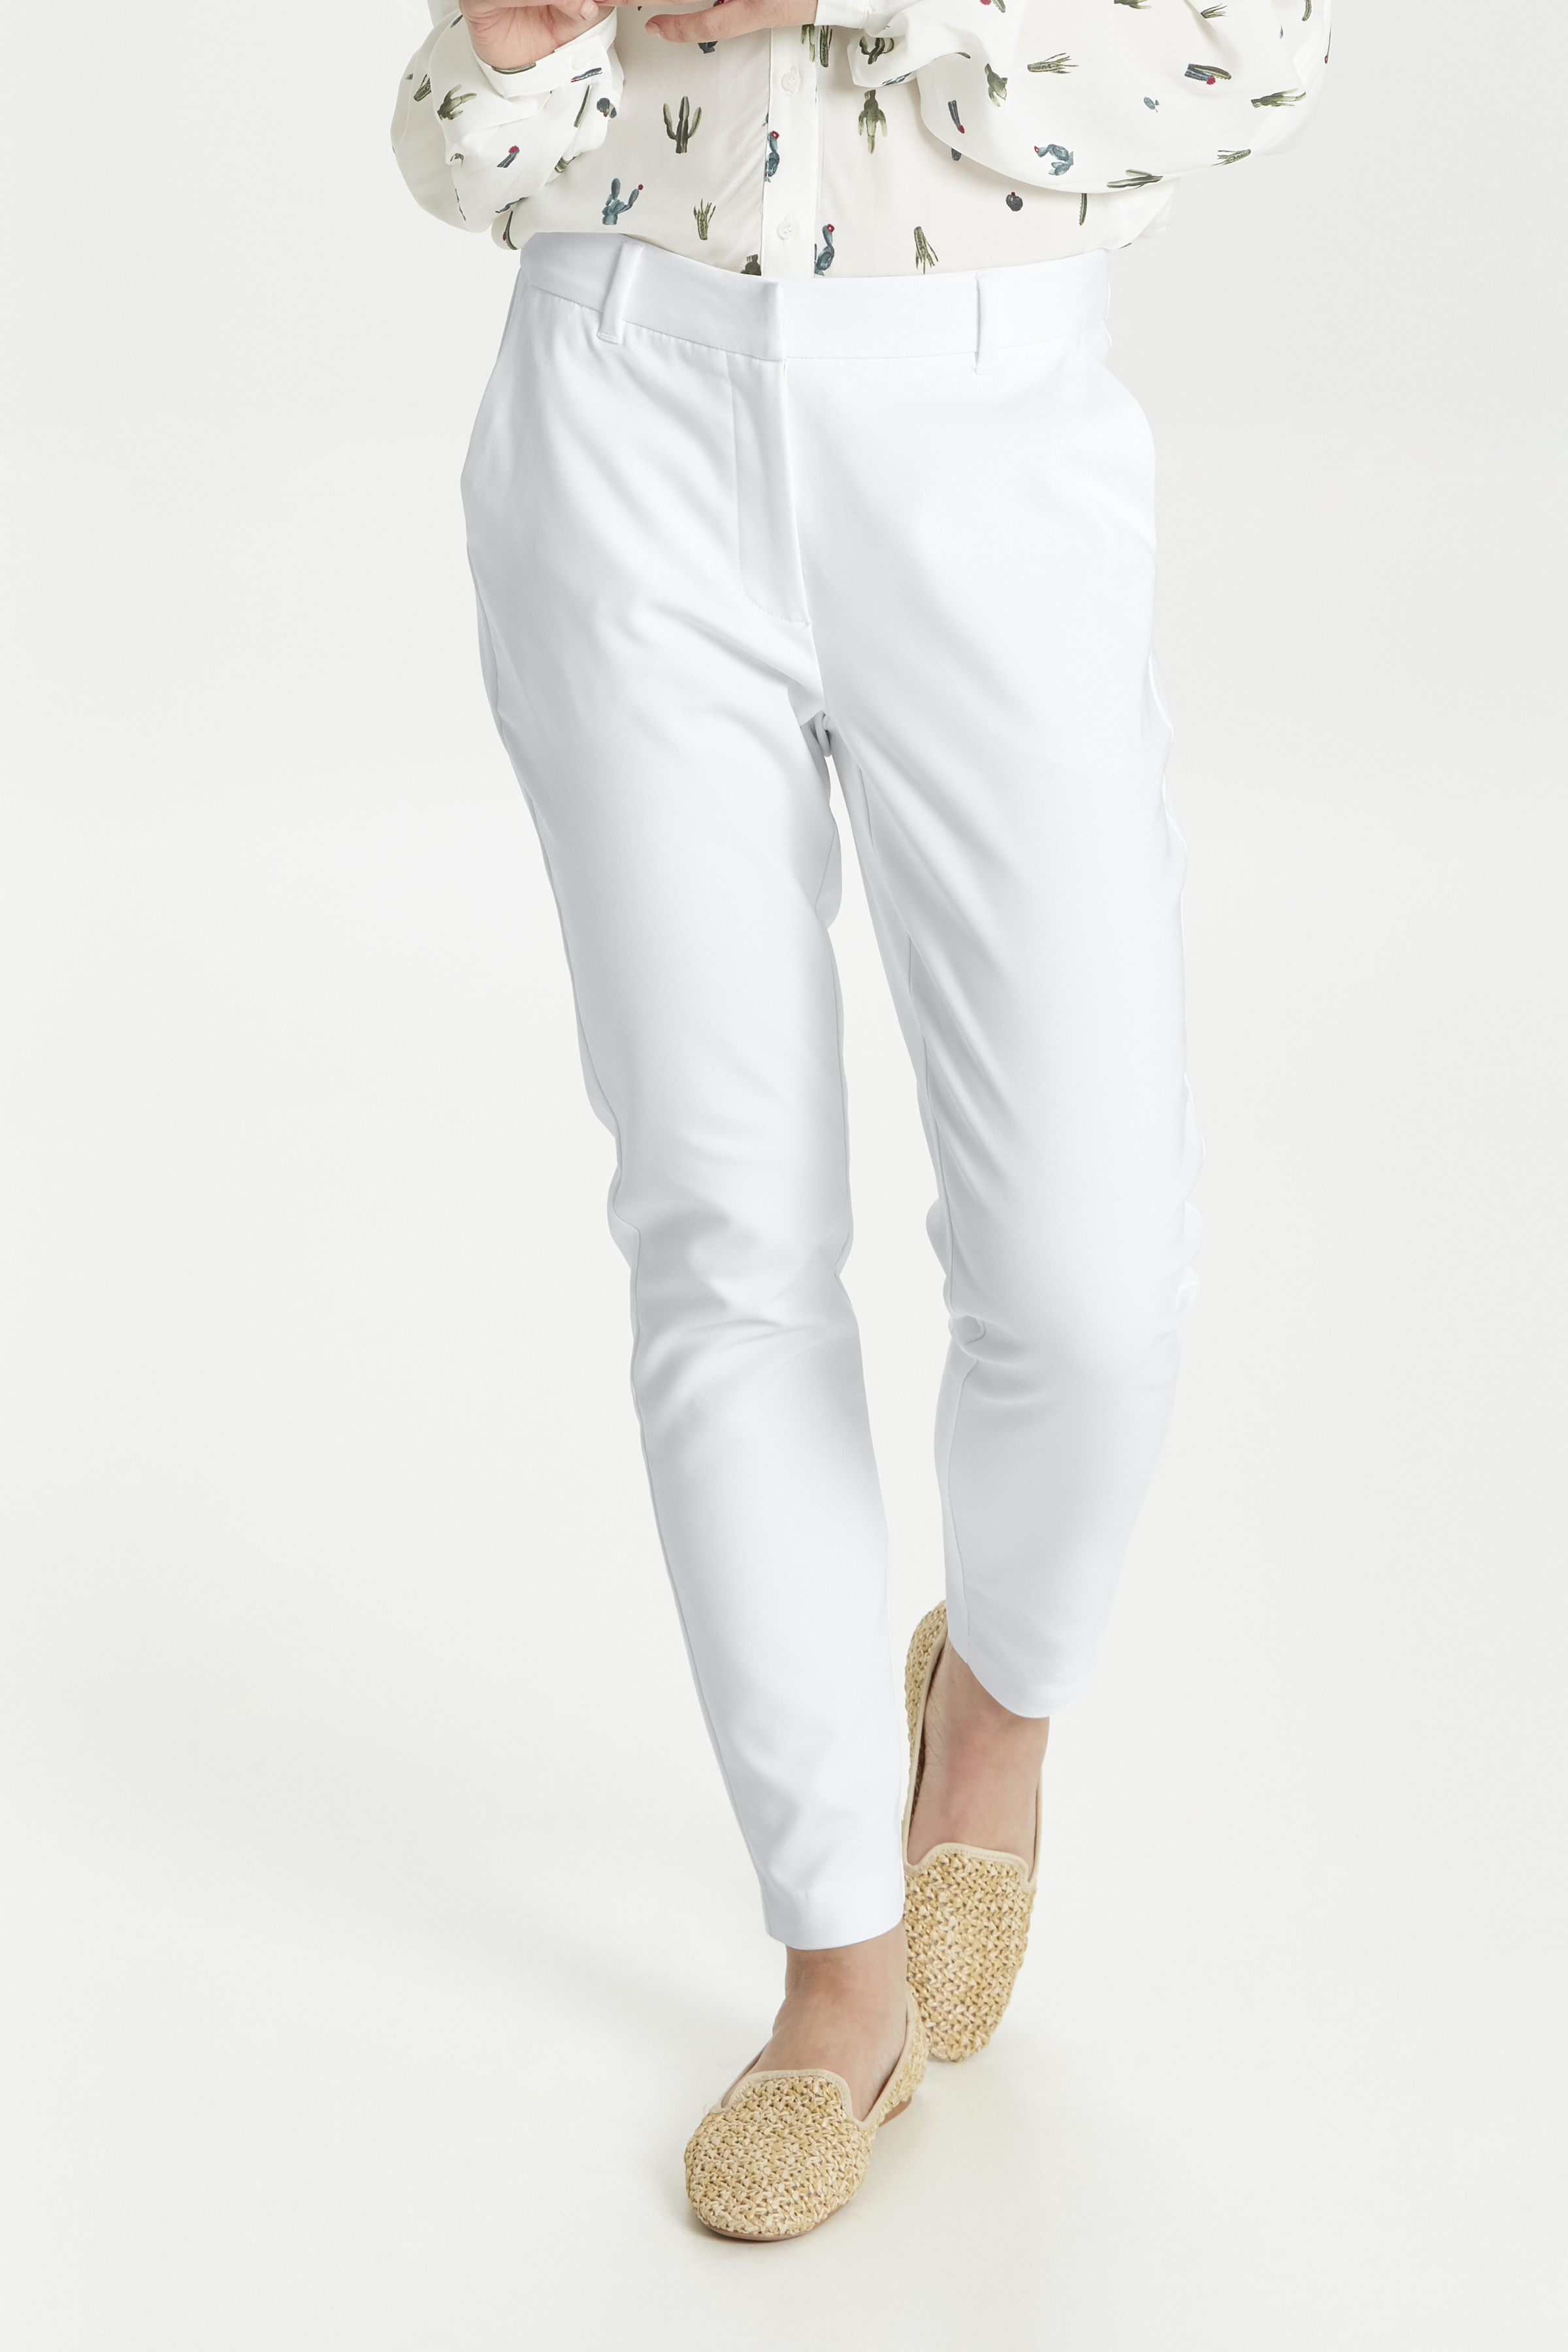 Off White Pants Suiting fra b.young – Køb Off White Pants Suiting fra str. 34-44 her